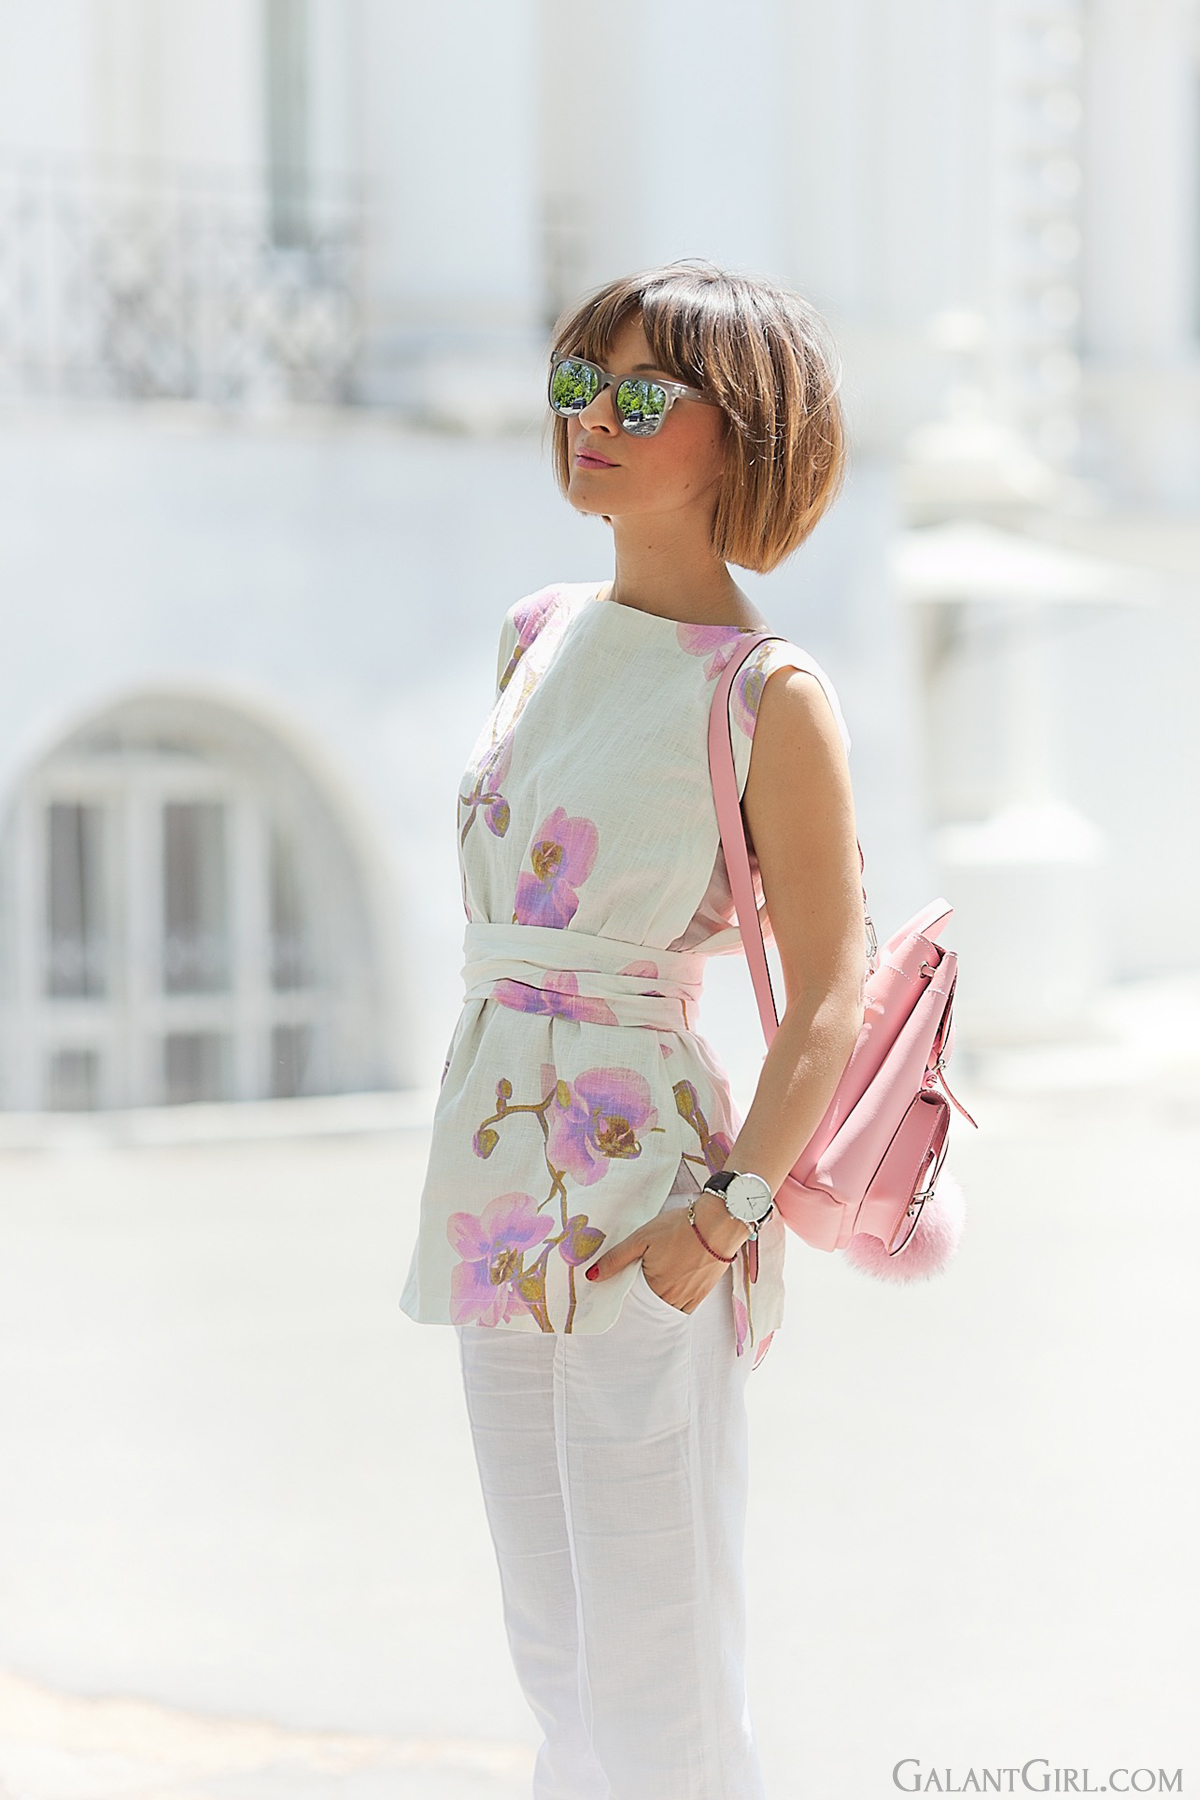 look-ootd-fashionblogger-fashionblog-streetstyle-springoutfit-summeroutfit-bloggerstreetstyle-mode-wiwt-floralprint-chicstyle-floralkimono-galantgirl